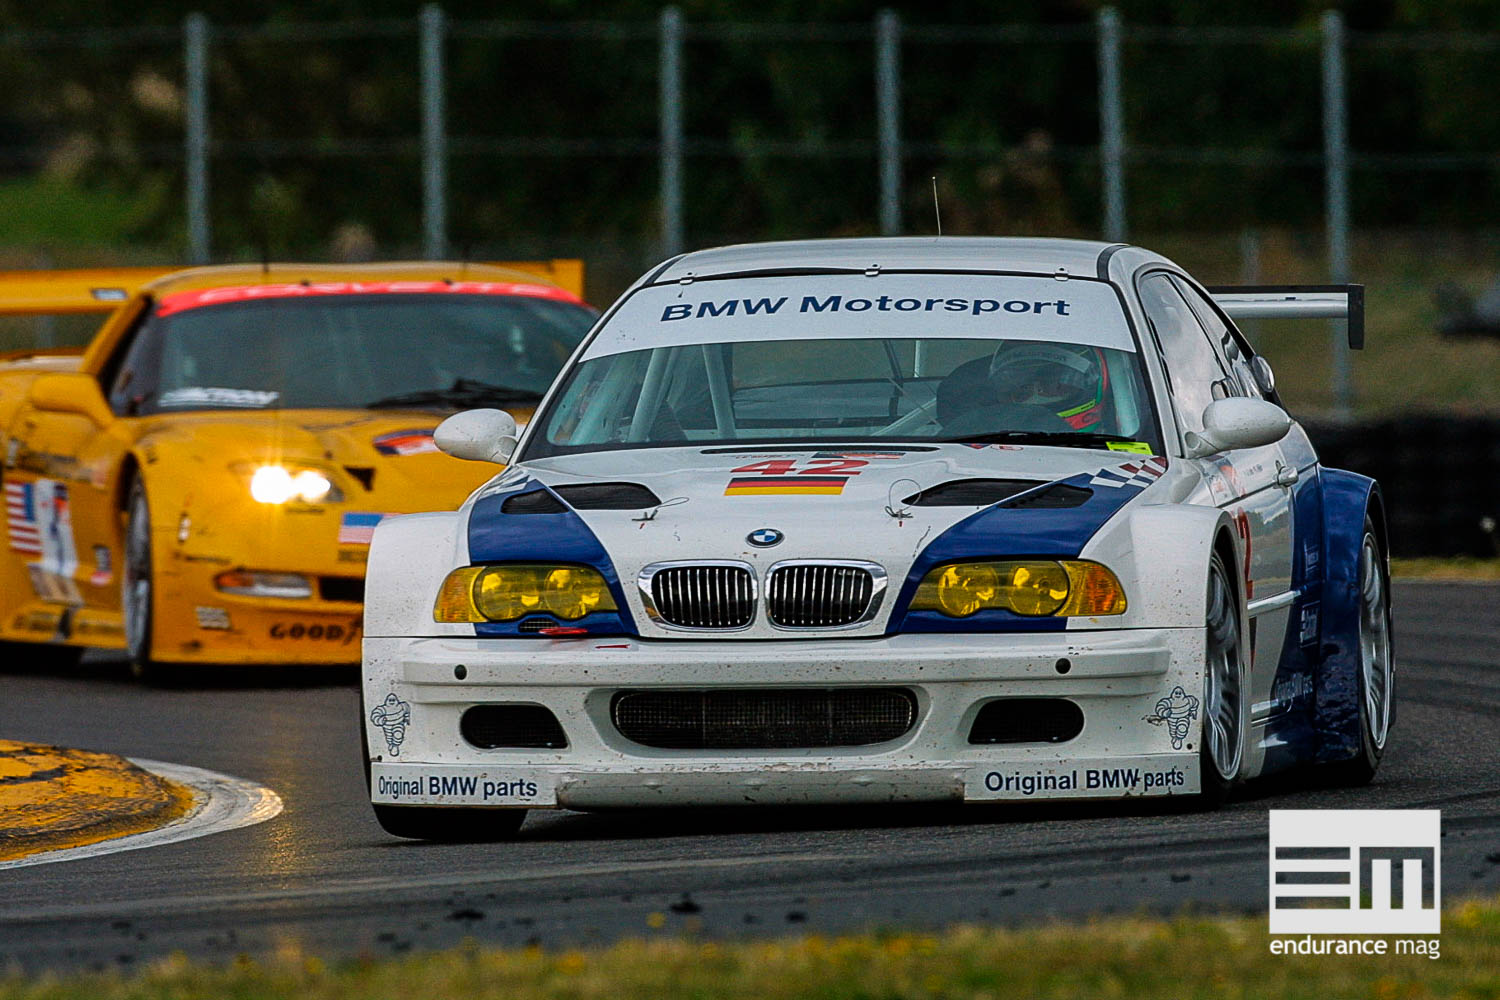 Jorg Muller (GER) in the BMW M3 GTR # 42 races in front during the ALMS race in Portland, Oregon, USA. Muller is teamed with J.J. Letho (FIN).